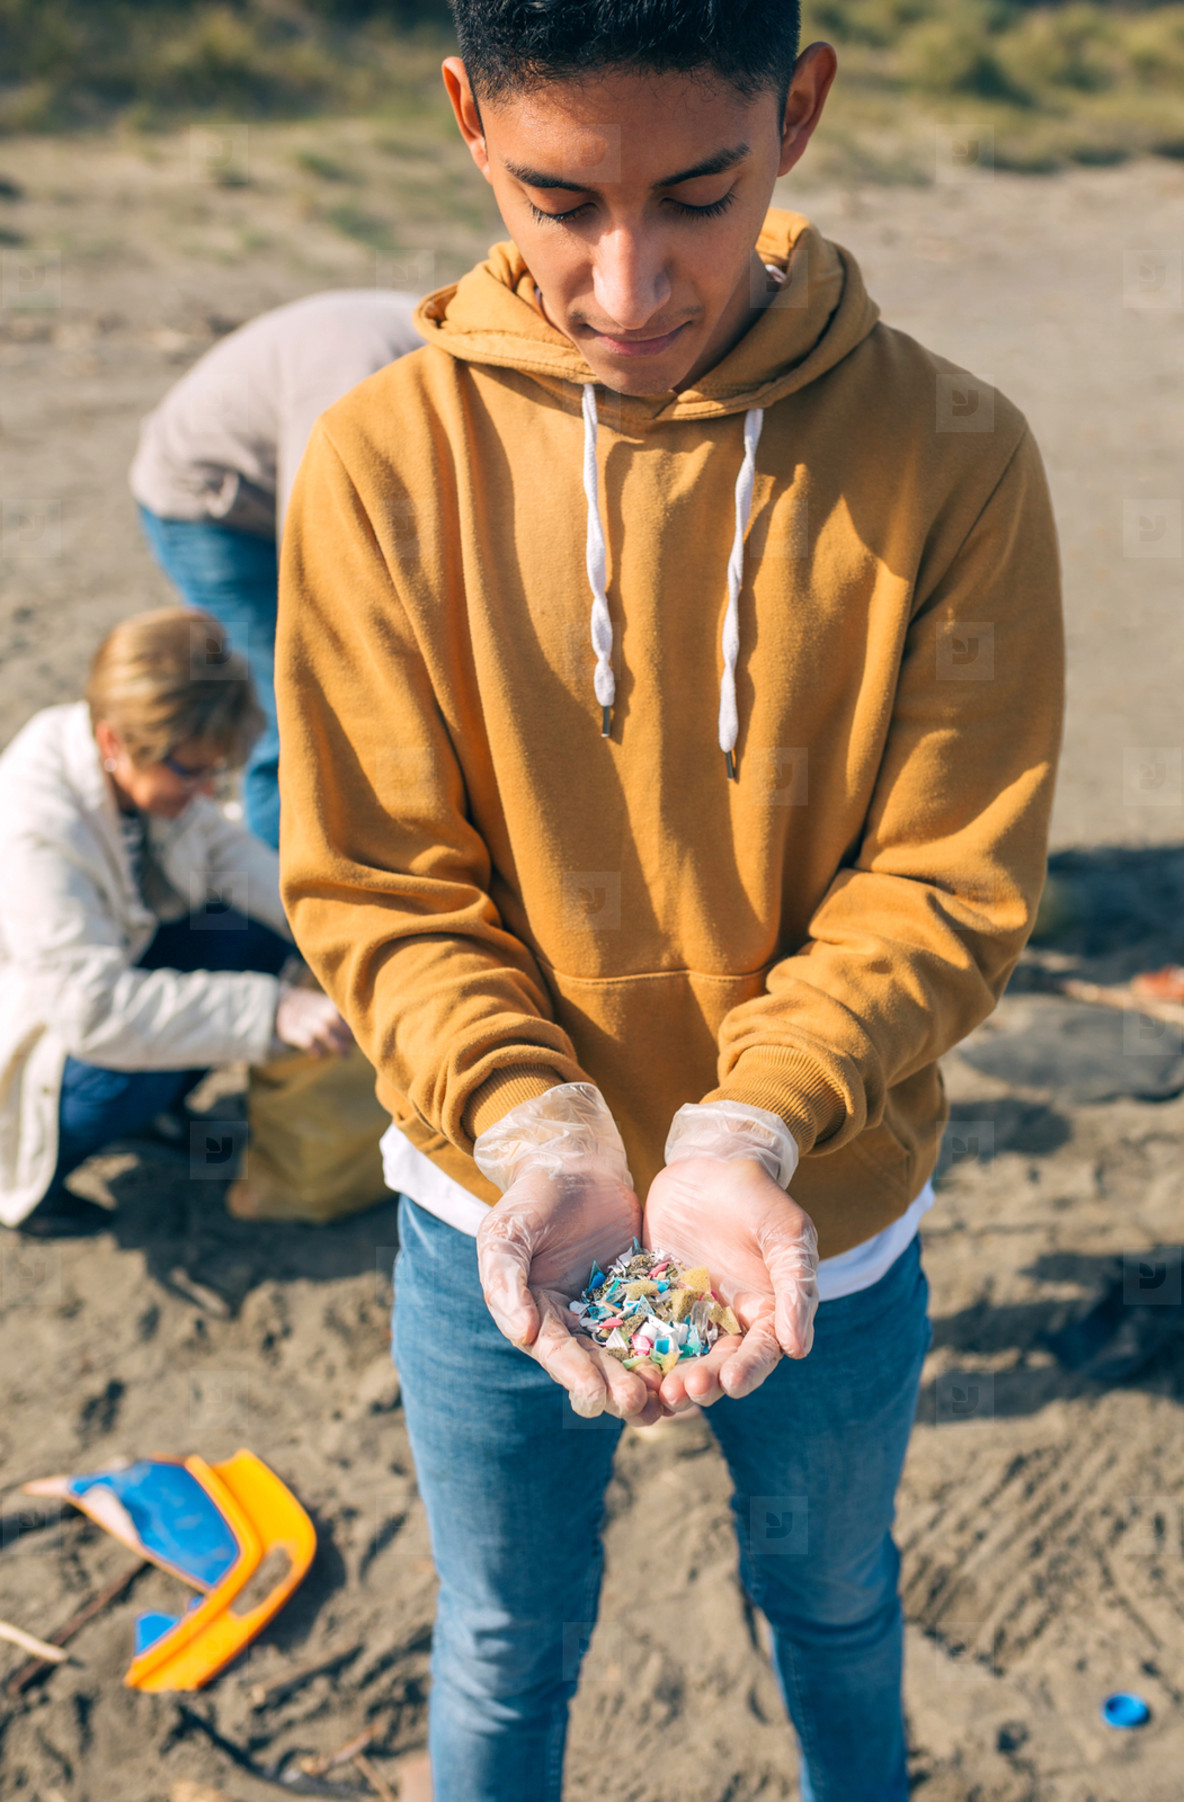 Young man showing microplastics